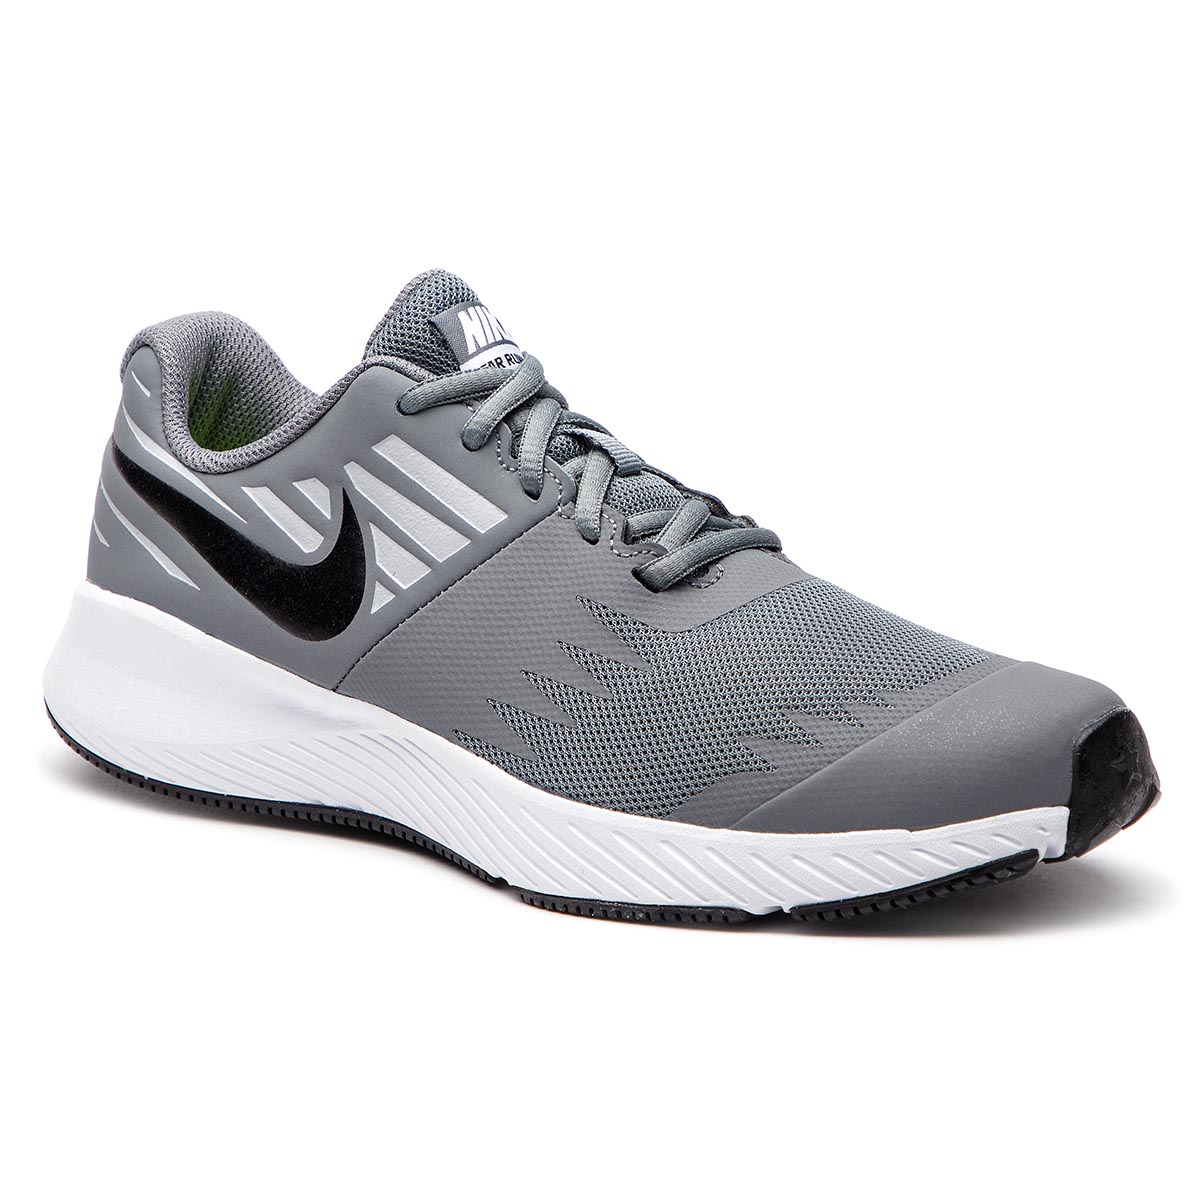 57e349a4fa Shoes NIKE Star Runner (GS) 907254 006 Cool Grey/Black/Volt/Wolf Grey